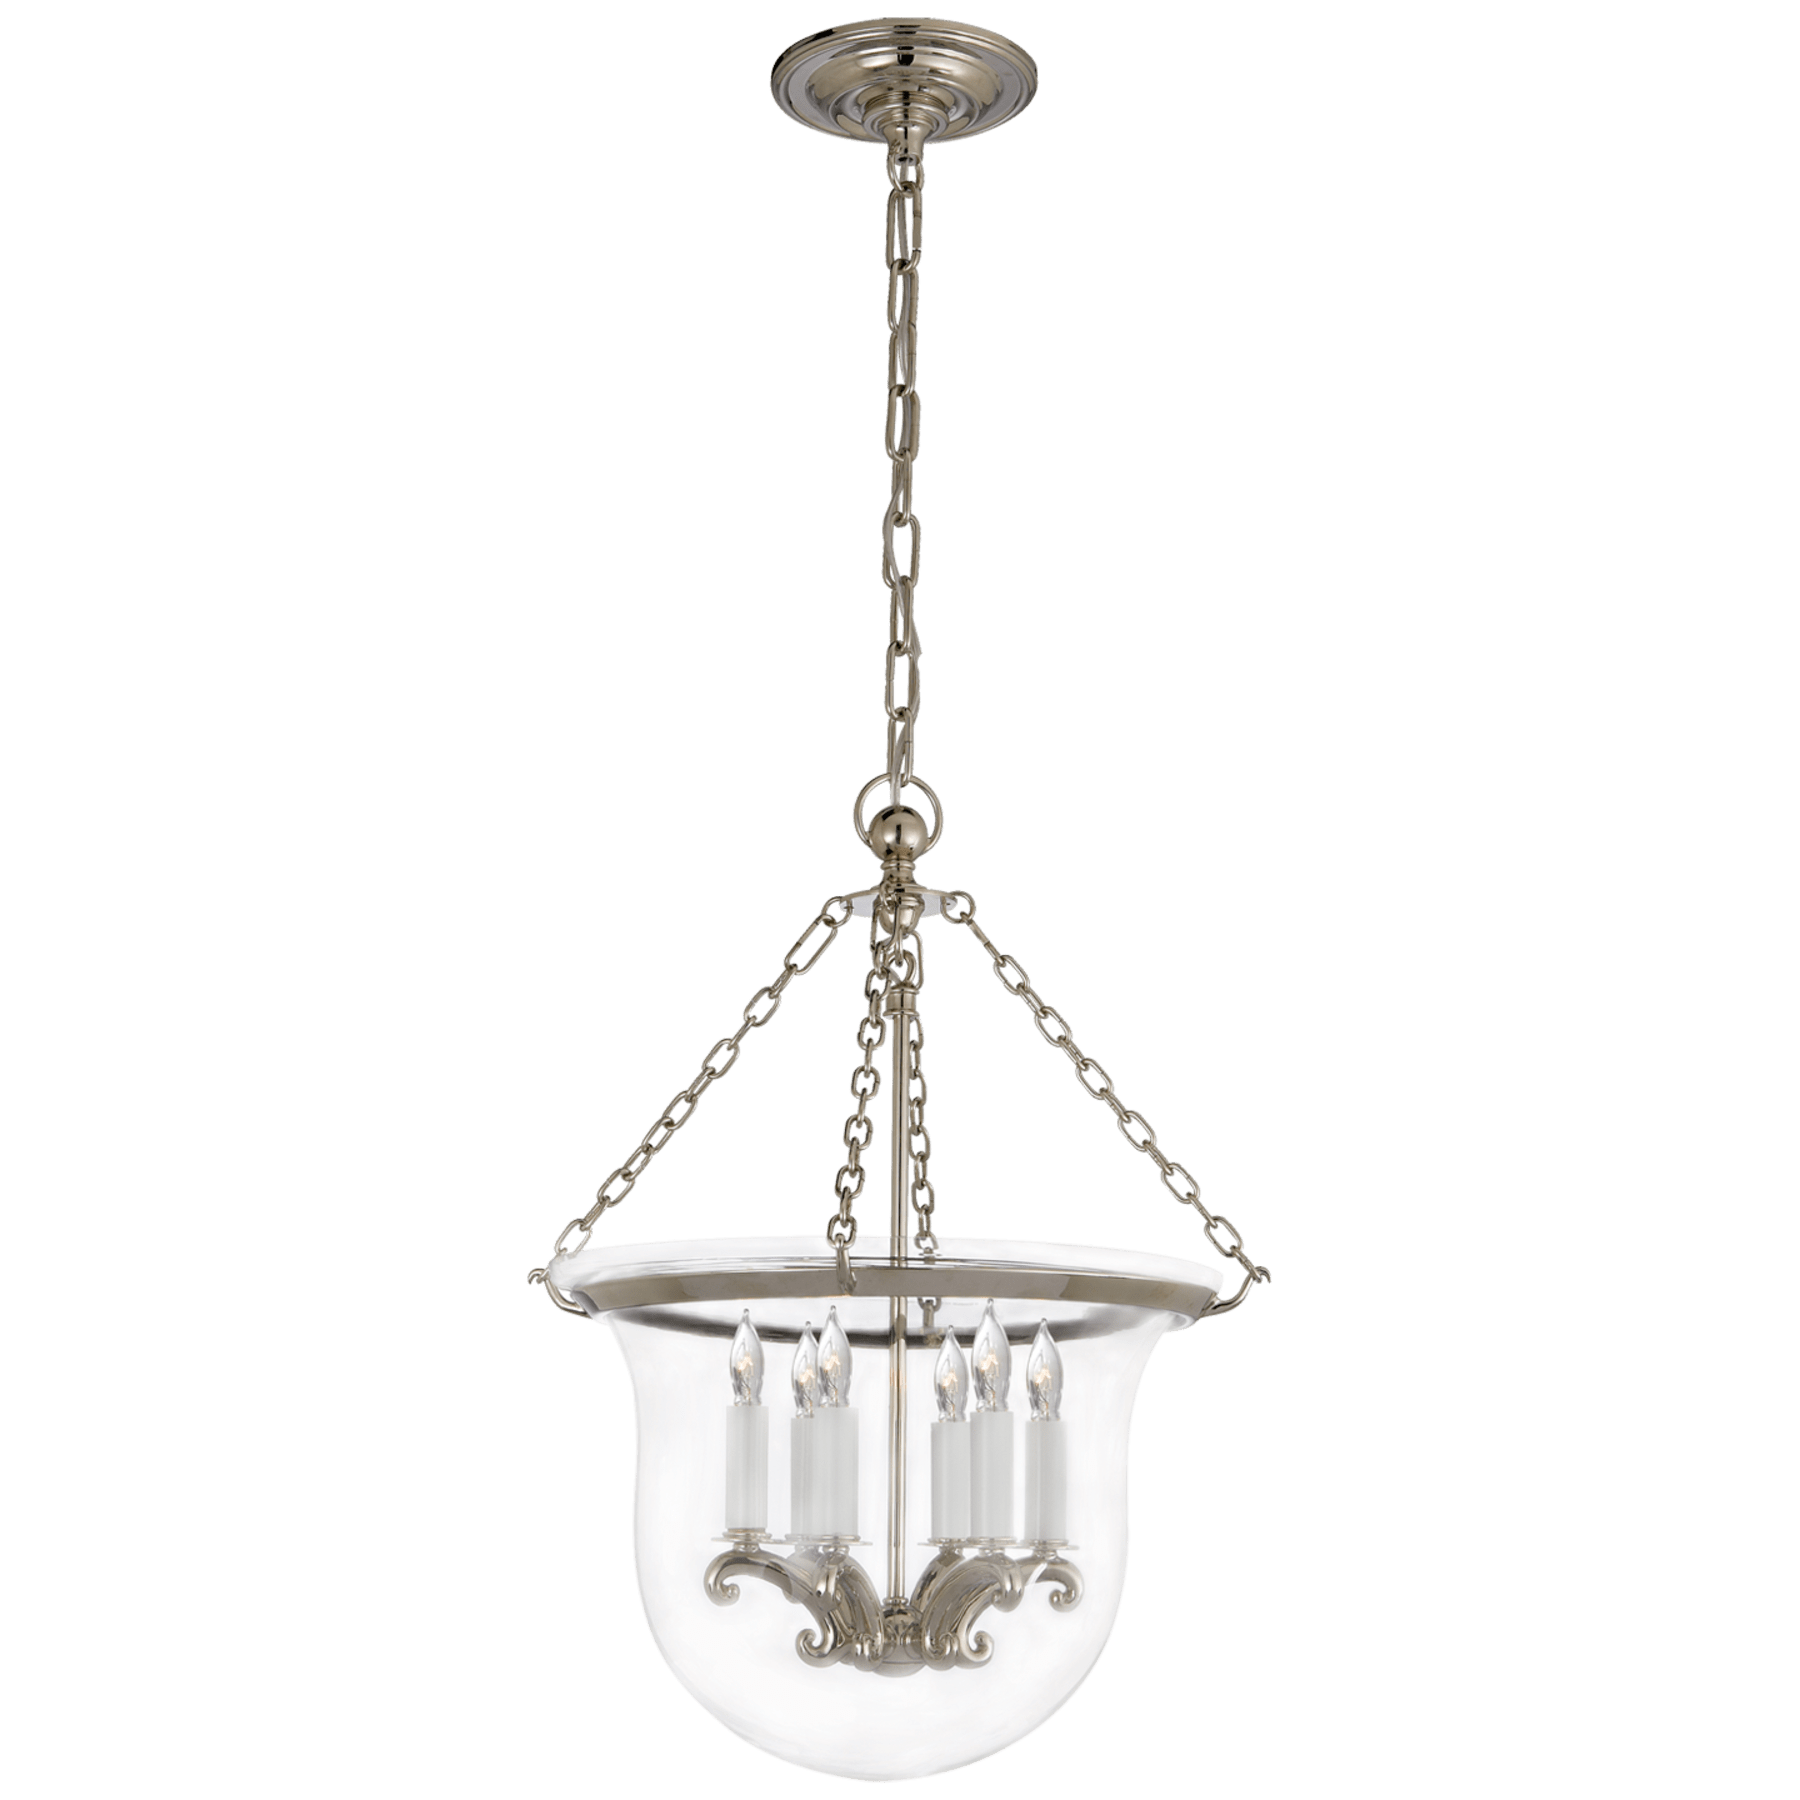 medium polished nickel bell jar lantern